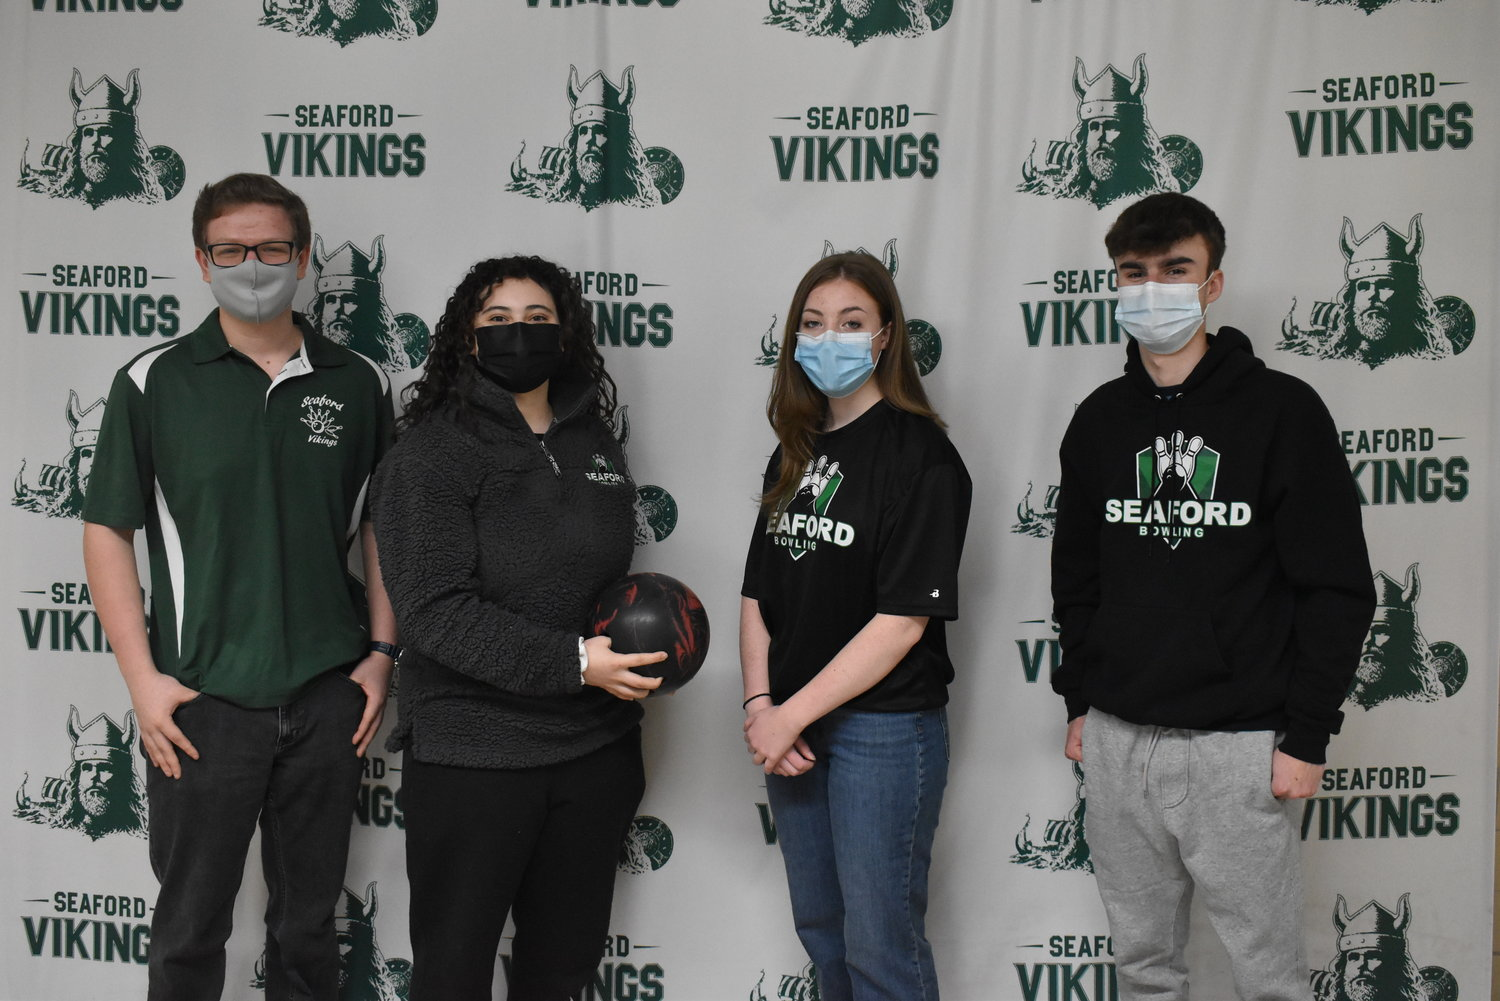 Seaford bowlers, from left, Peter Weber, Sofia Sanchez, Marissa Mele and Joseph Gallagher are looking for another big season.